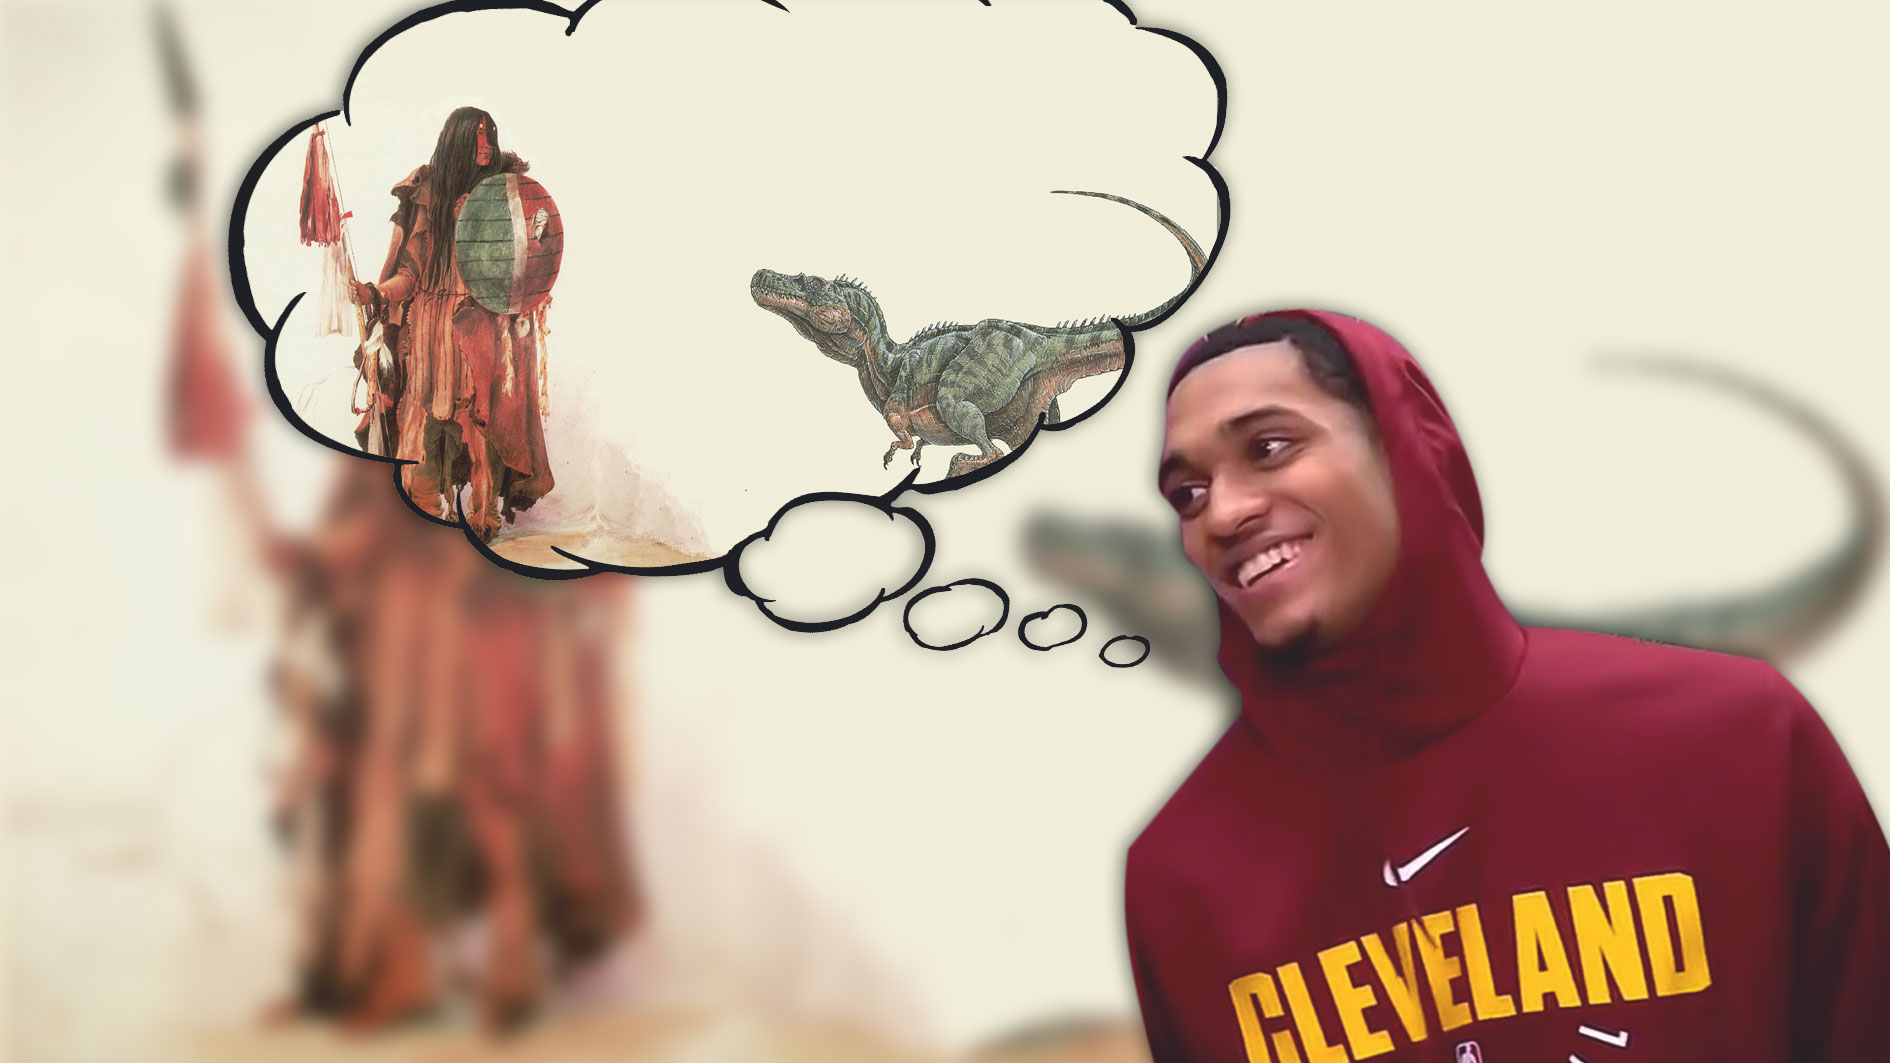 Jordan Clarkson Thinks Dinosaurs Were The Pets of 'Bigger People'